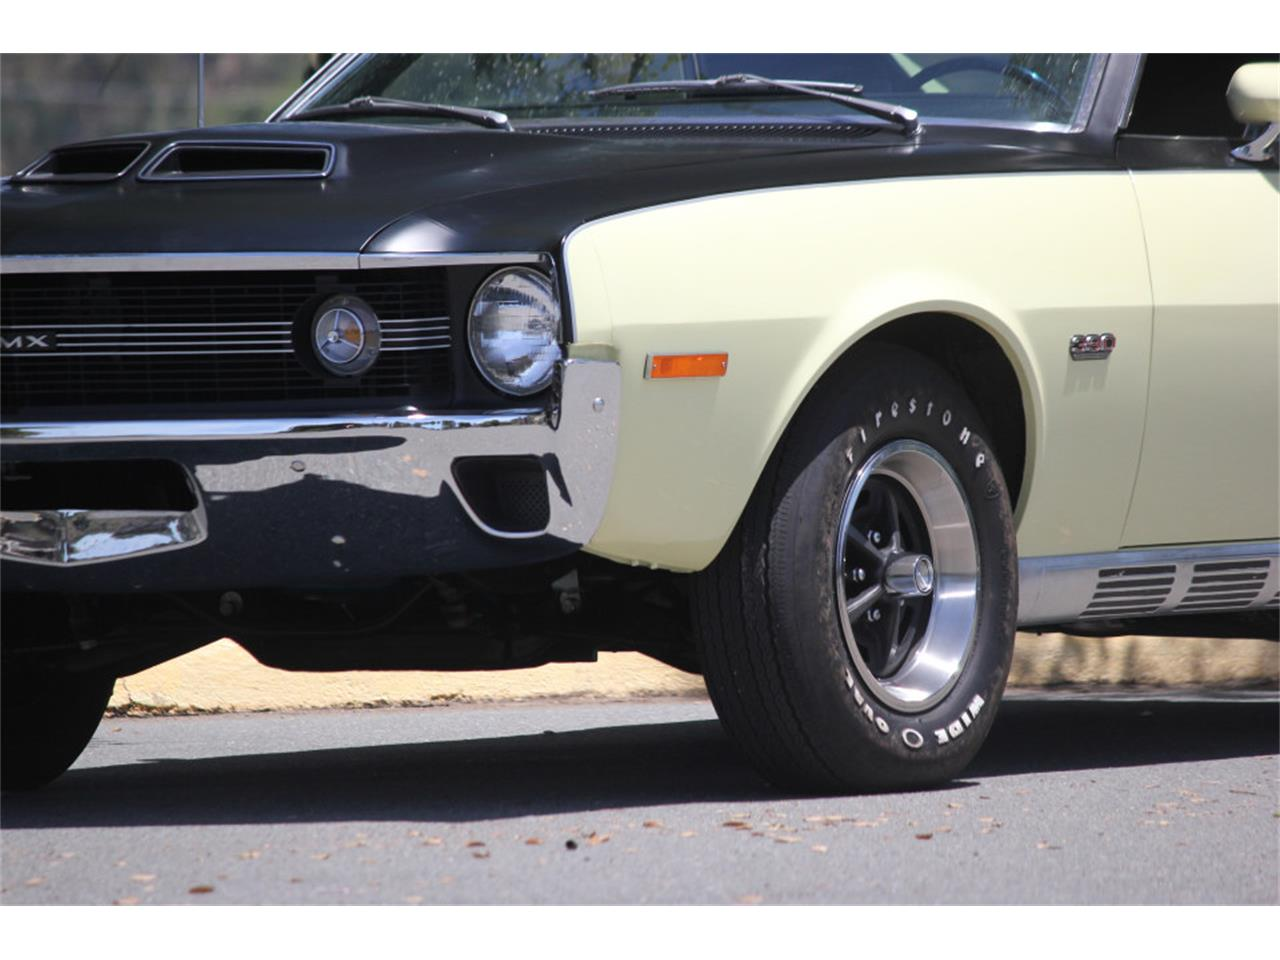 Large Picture of Classic '70 AMC AMX located in California - $59,500.00 Offered by Precious Metals - QCFB